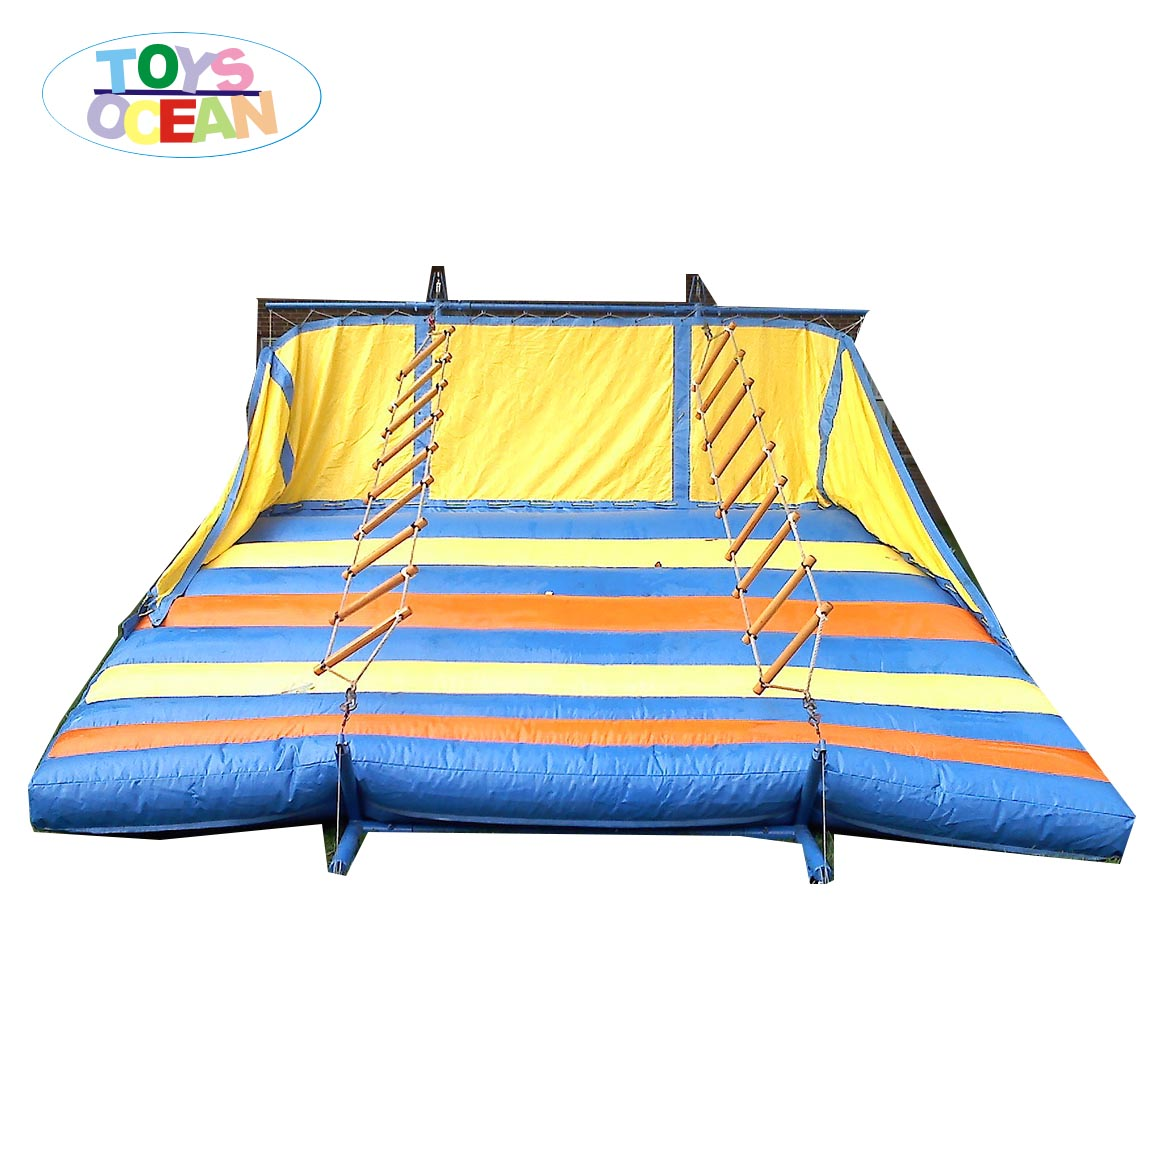 6x3x3m Inflatable Climbing Jacobs Ladder For Sport Game Buy Inflatable Ladder Climbing Game Inflatable Jacobs Ladder Inflatable Jacobs Ladder For Sport Game Product On Alibaba Com